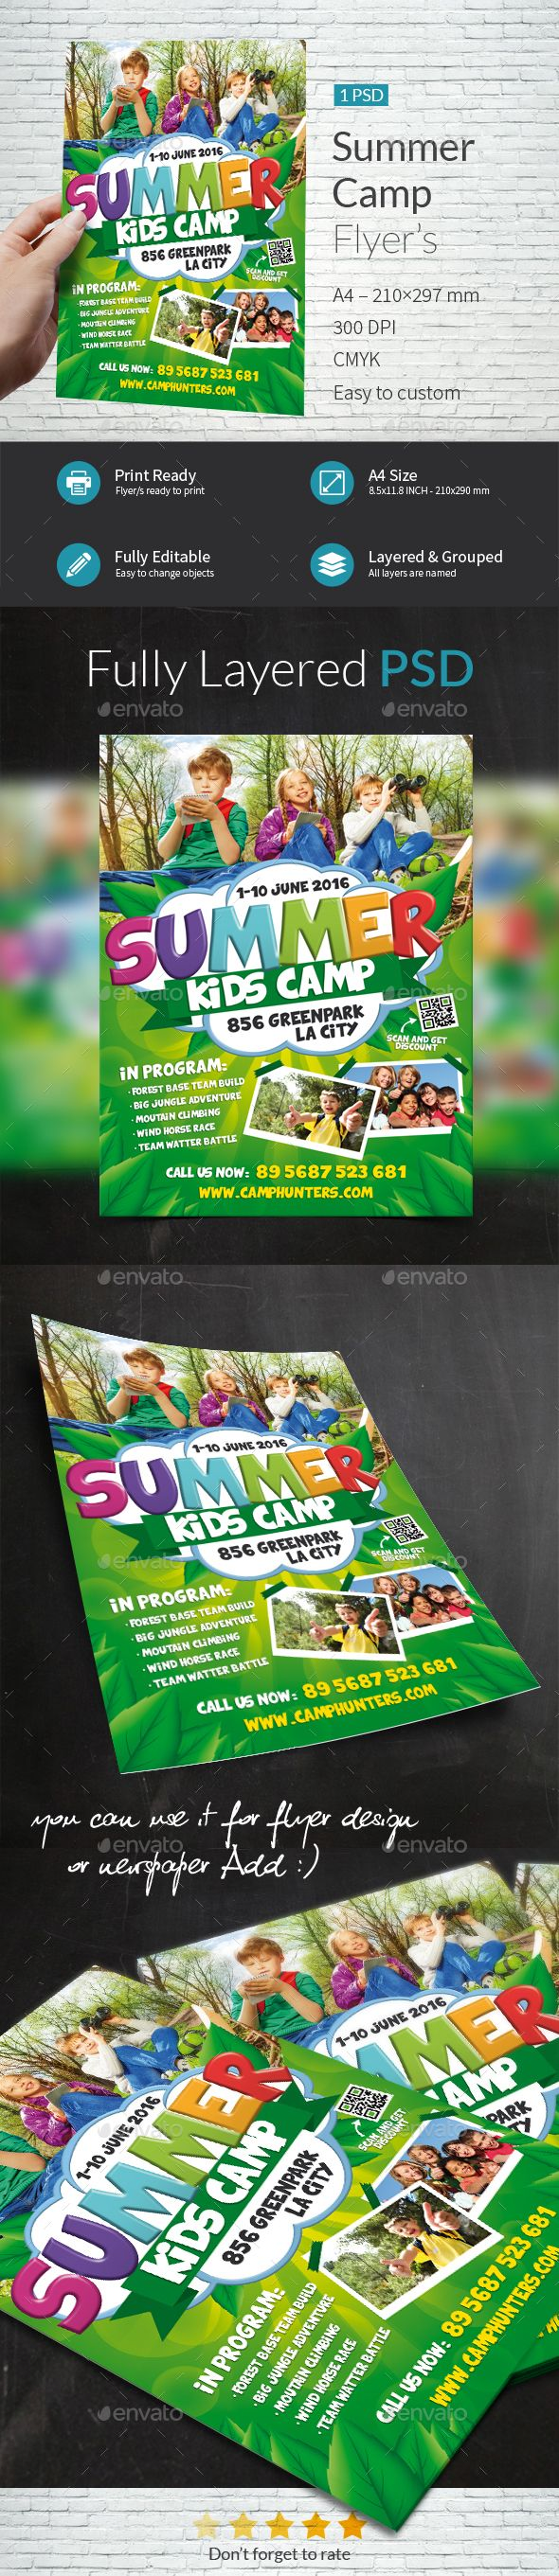 Summer Camp Flyer Template PSD. Download here: http://graphicriver.net/item/summer-camp-flyer-template/15500546?ref=ksioks